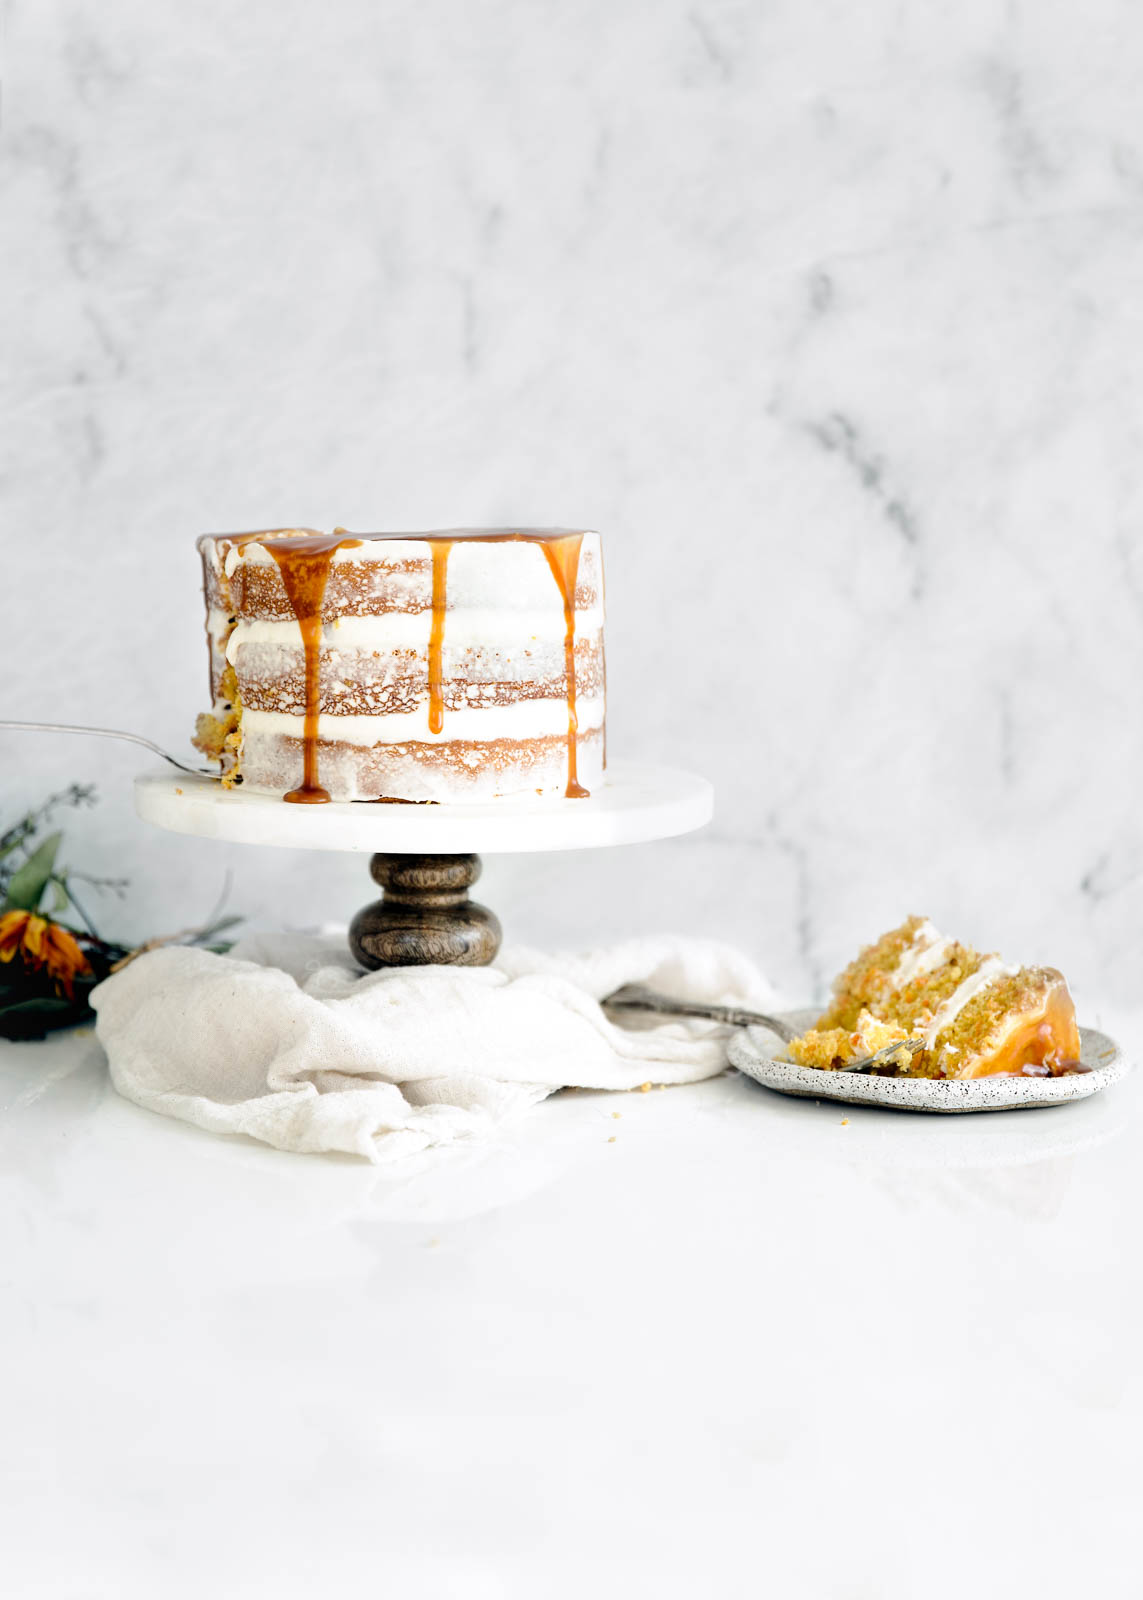 spiced carrot cake on cake stand next to slice of cake